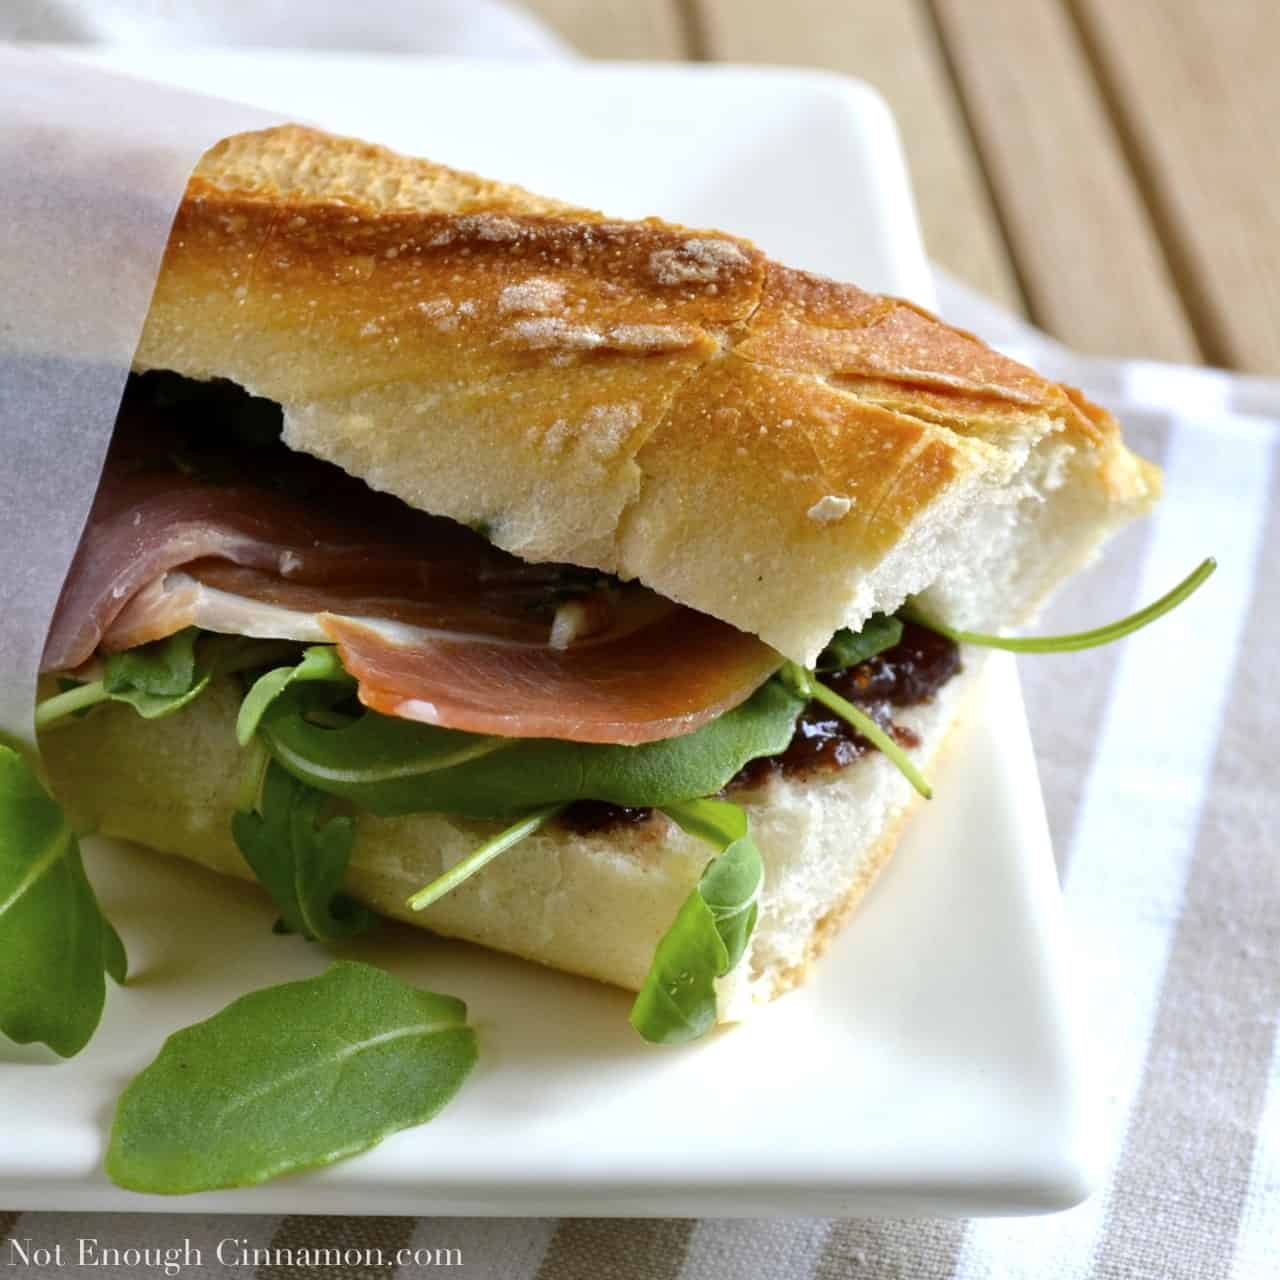 Prosciutto Sandwich with Pesto, Arugula and Fig Chutney wrapped in sandwich paper and served on a white plate